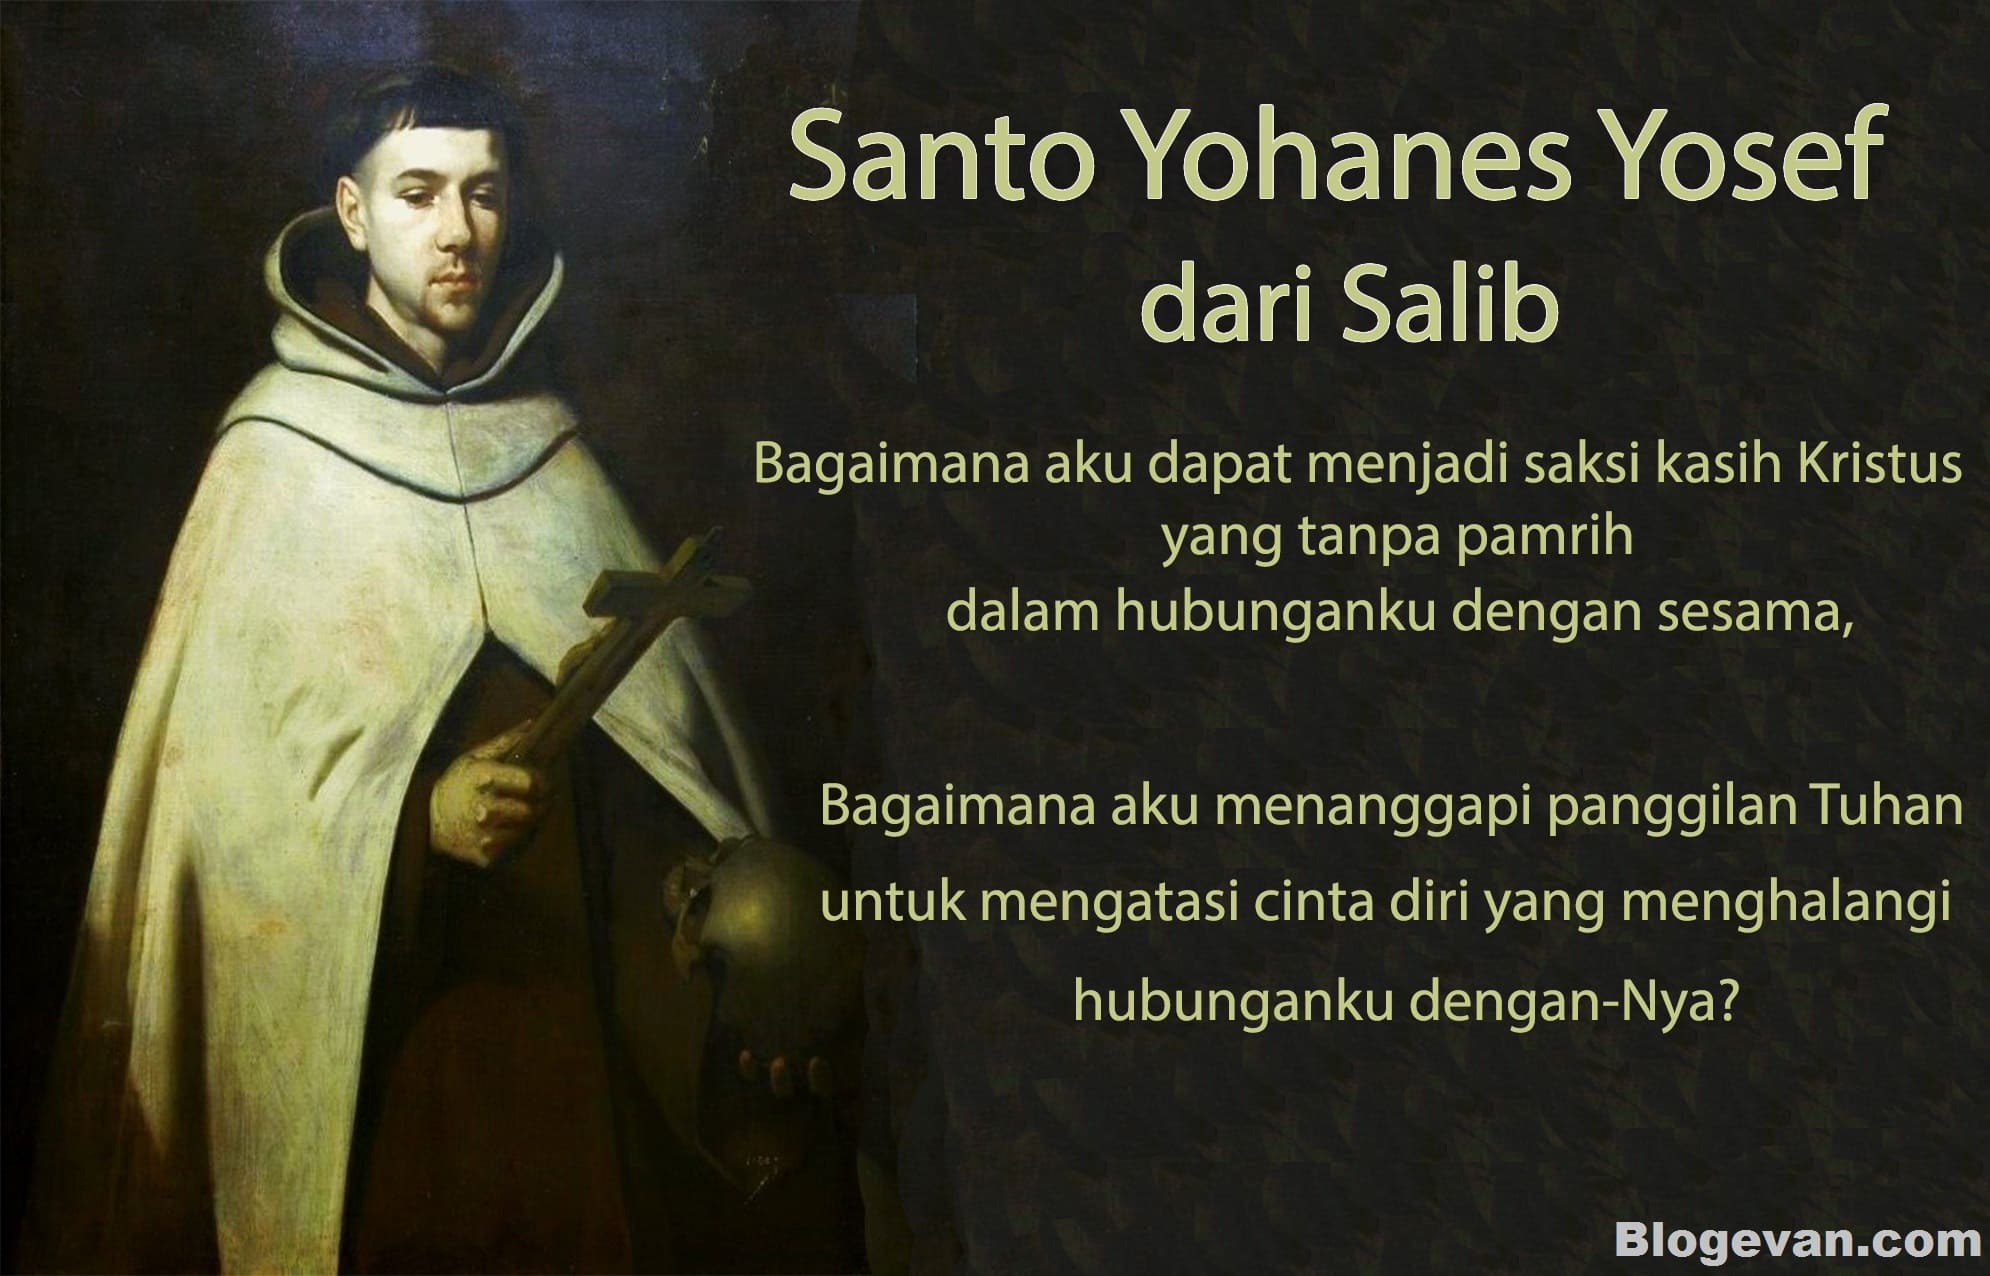 Santo Yohanes Yosef dari Salib,law firm,car donate,car donation,Personal Injury,Medical Malpractice,Criminal Law,DUI,Family Law,Bankruptcy,Business Law,Consumer Law,Employment Law,Estate Planning,Foreclosure Defense,Immigration Law,Intellectual Property,Nursing Home Abuse,Probate,Products Liability,Real Estate Law,Tax Law,Traffic Tickets,Workers Compensation